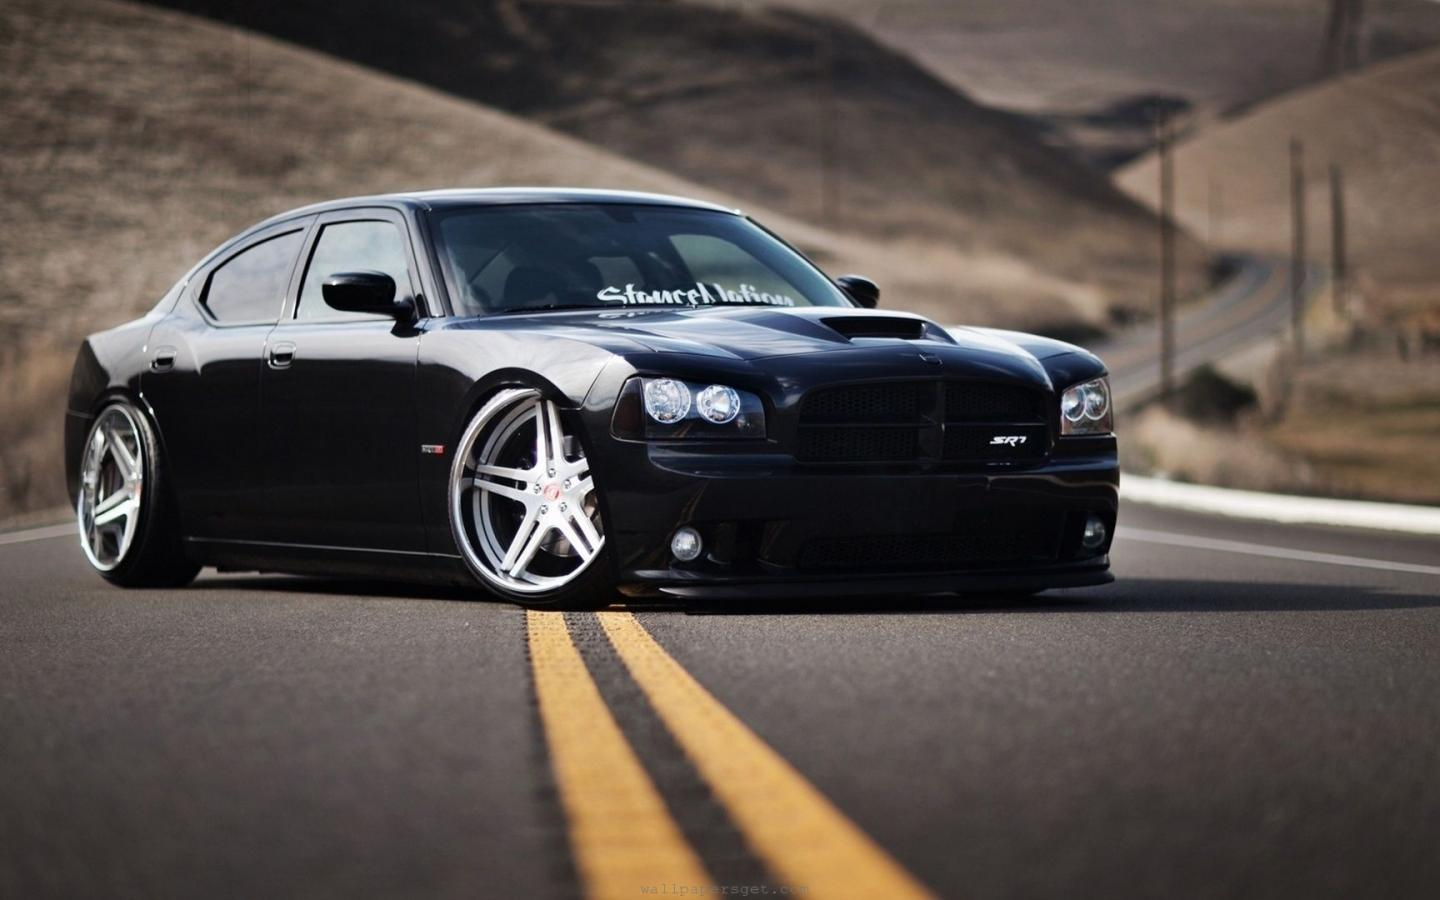 https://4.bp.blogspot.com/-Yj5hcbrINc4/UPh-VU0Pe-I/AAAAAAAAPM0/Lb5XN0KVmtk/s1600/dodge-charger-srt8-stance-nation-tuning-united-states-coupe-modified-car-900x1440.jpg